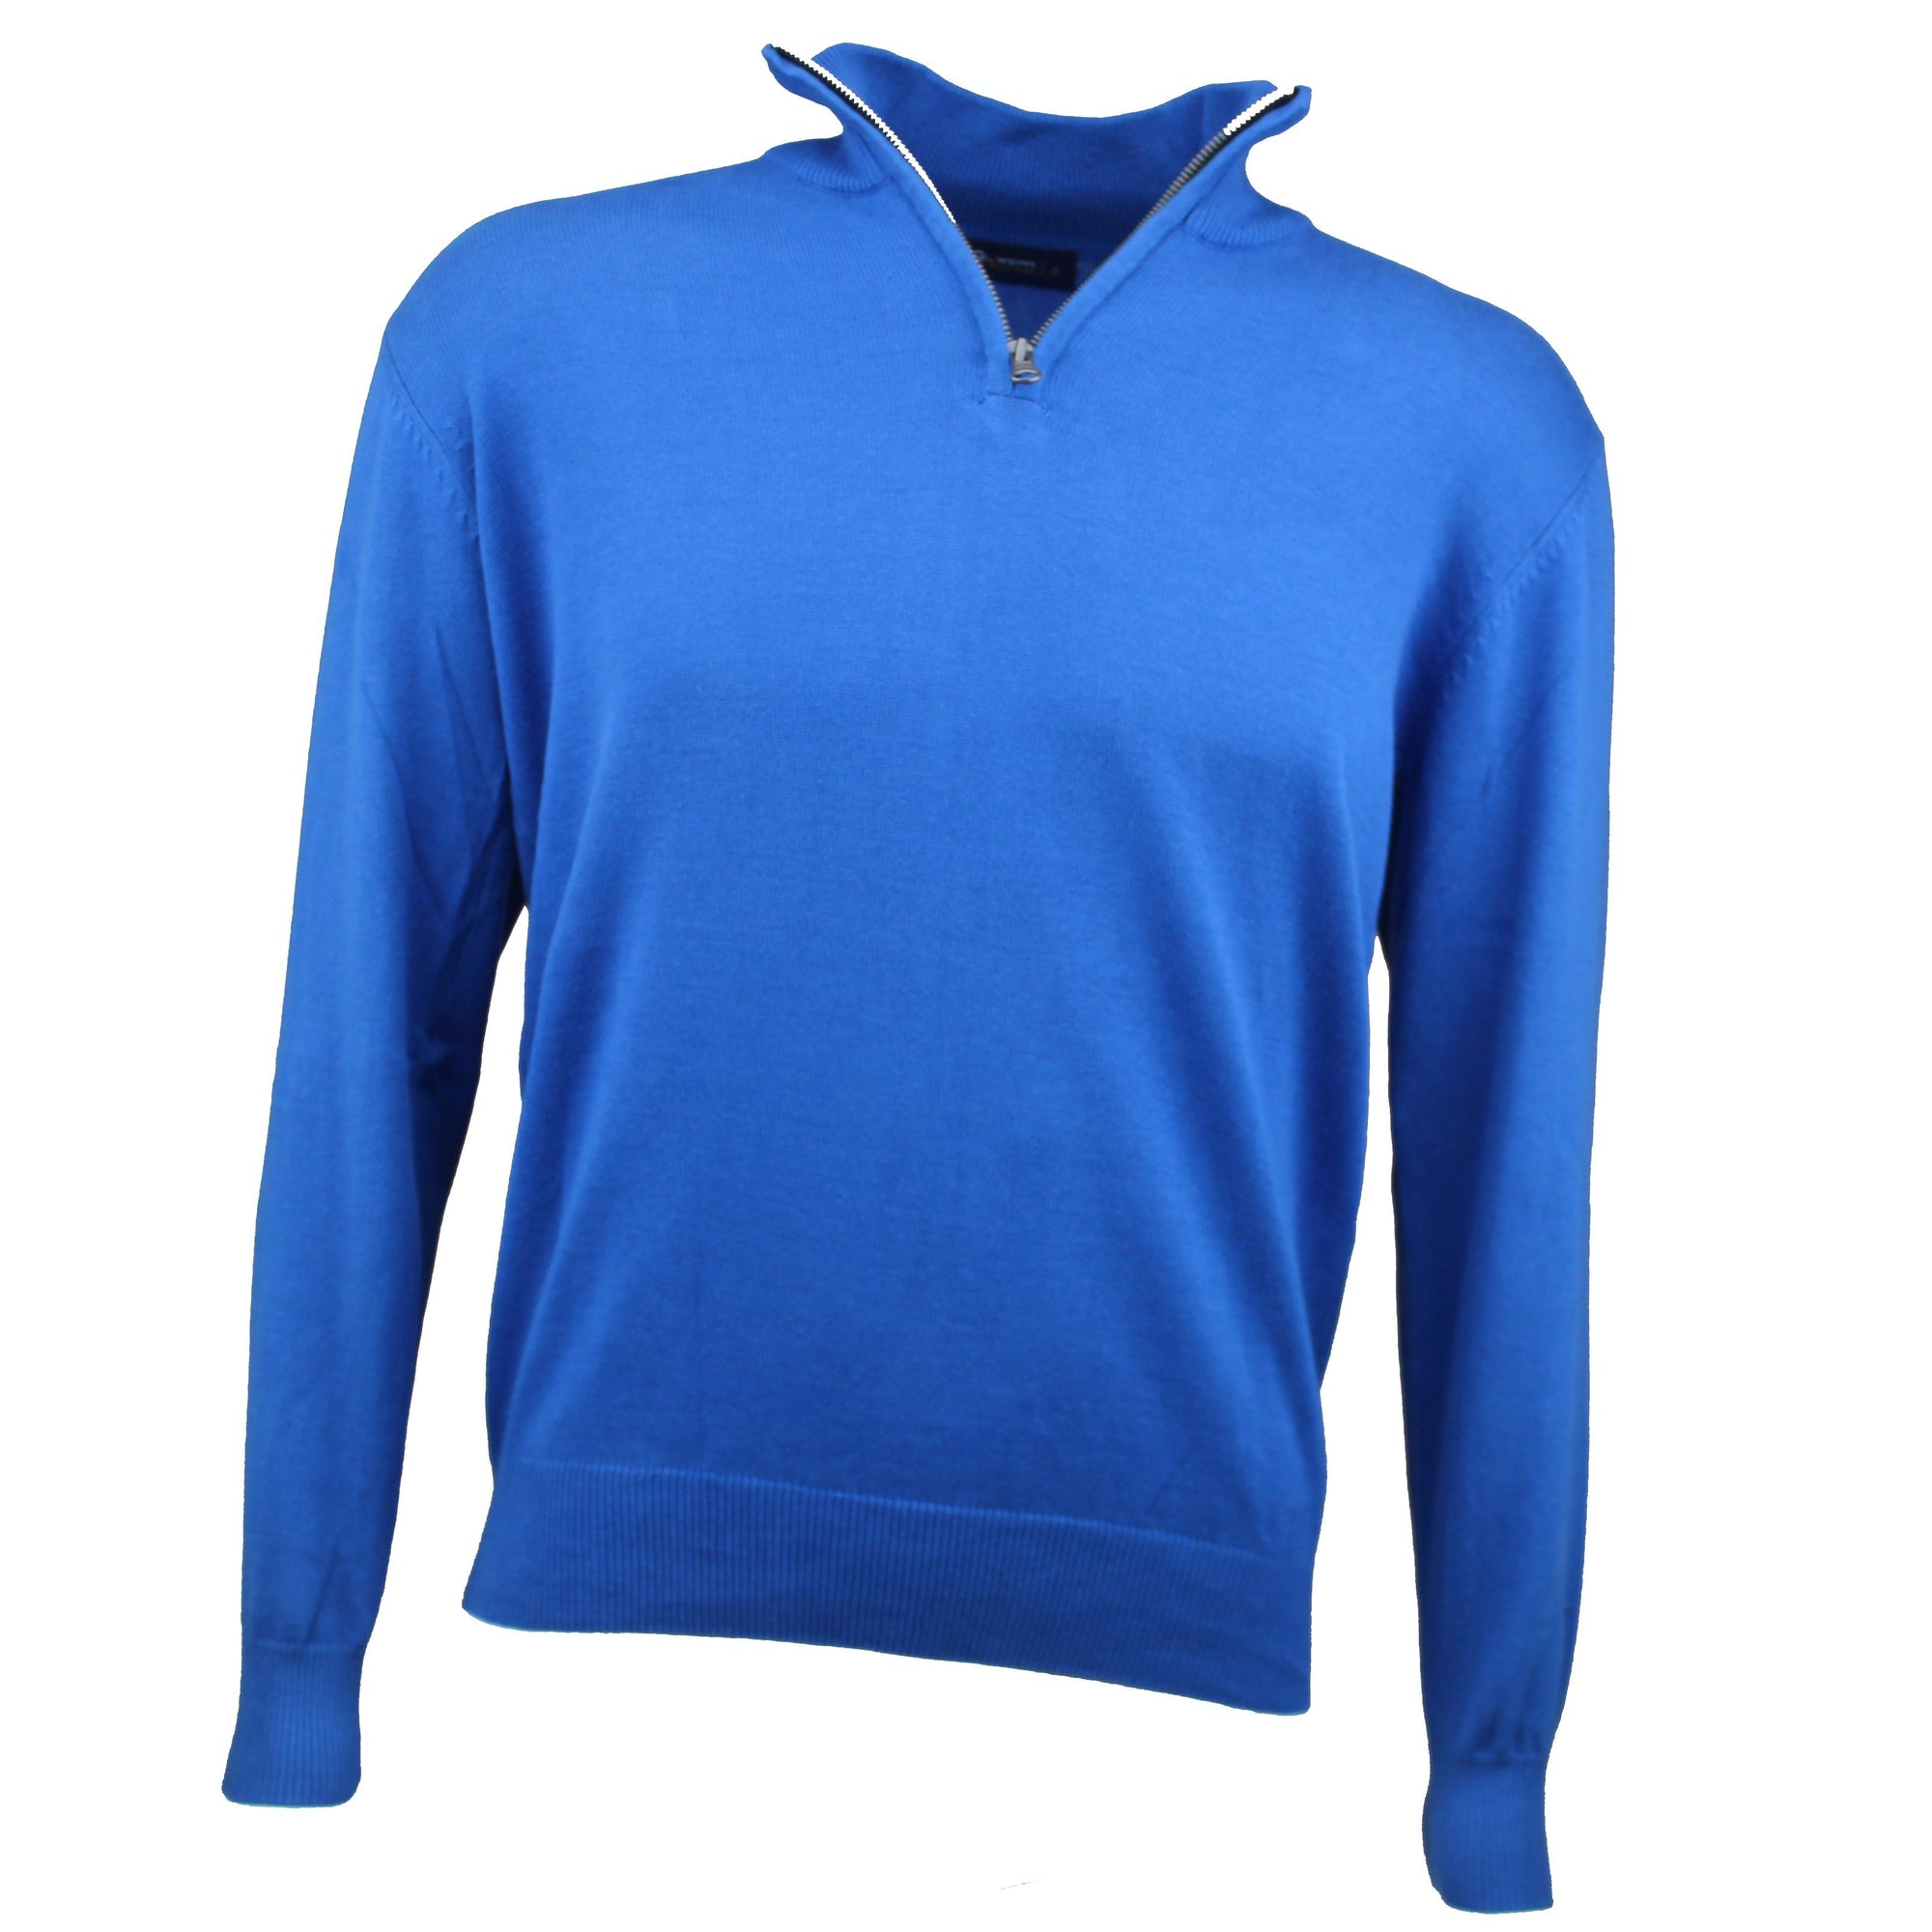 Druids Golf - Cotton Zip Neck Sweater (Blue)